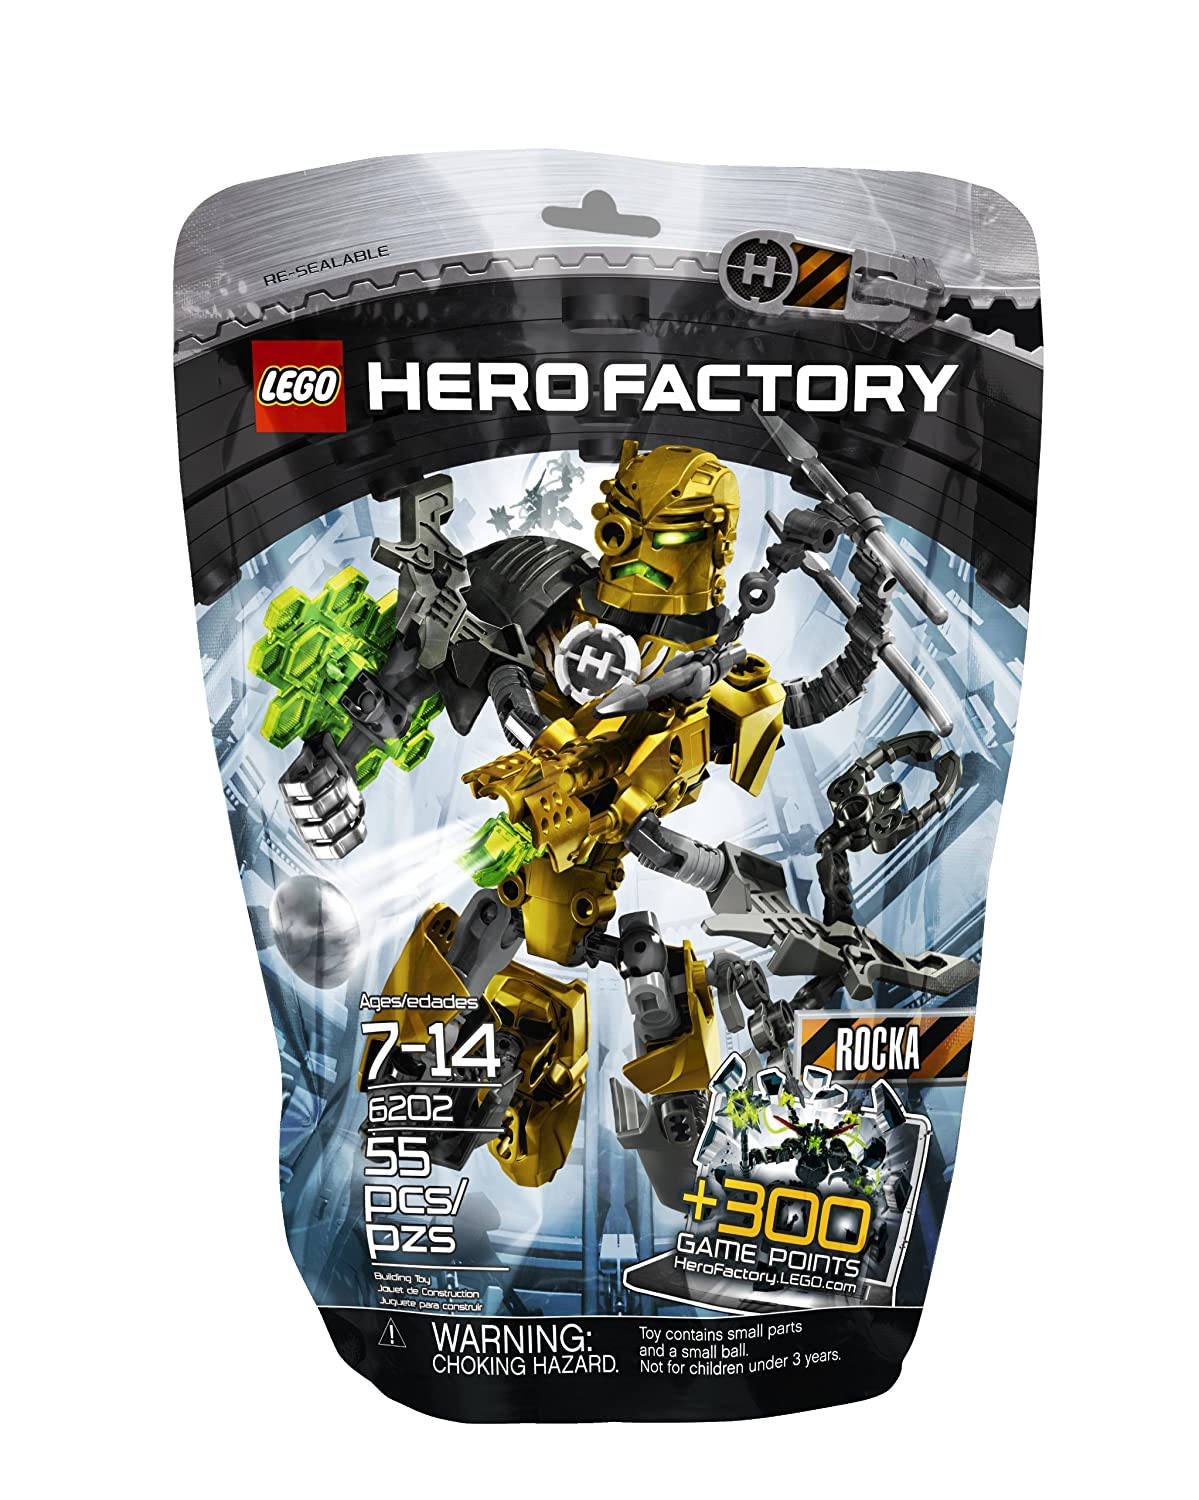 Lego Hero Factory Rocka Xl 2282 Top Christmas Toys Of 2017